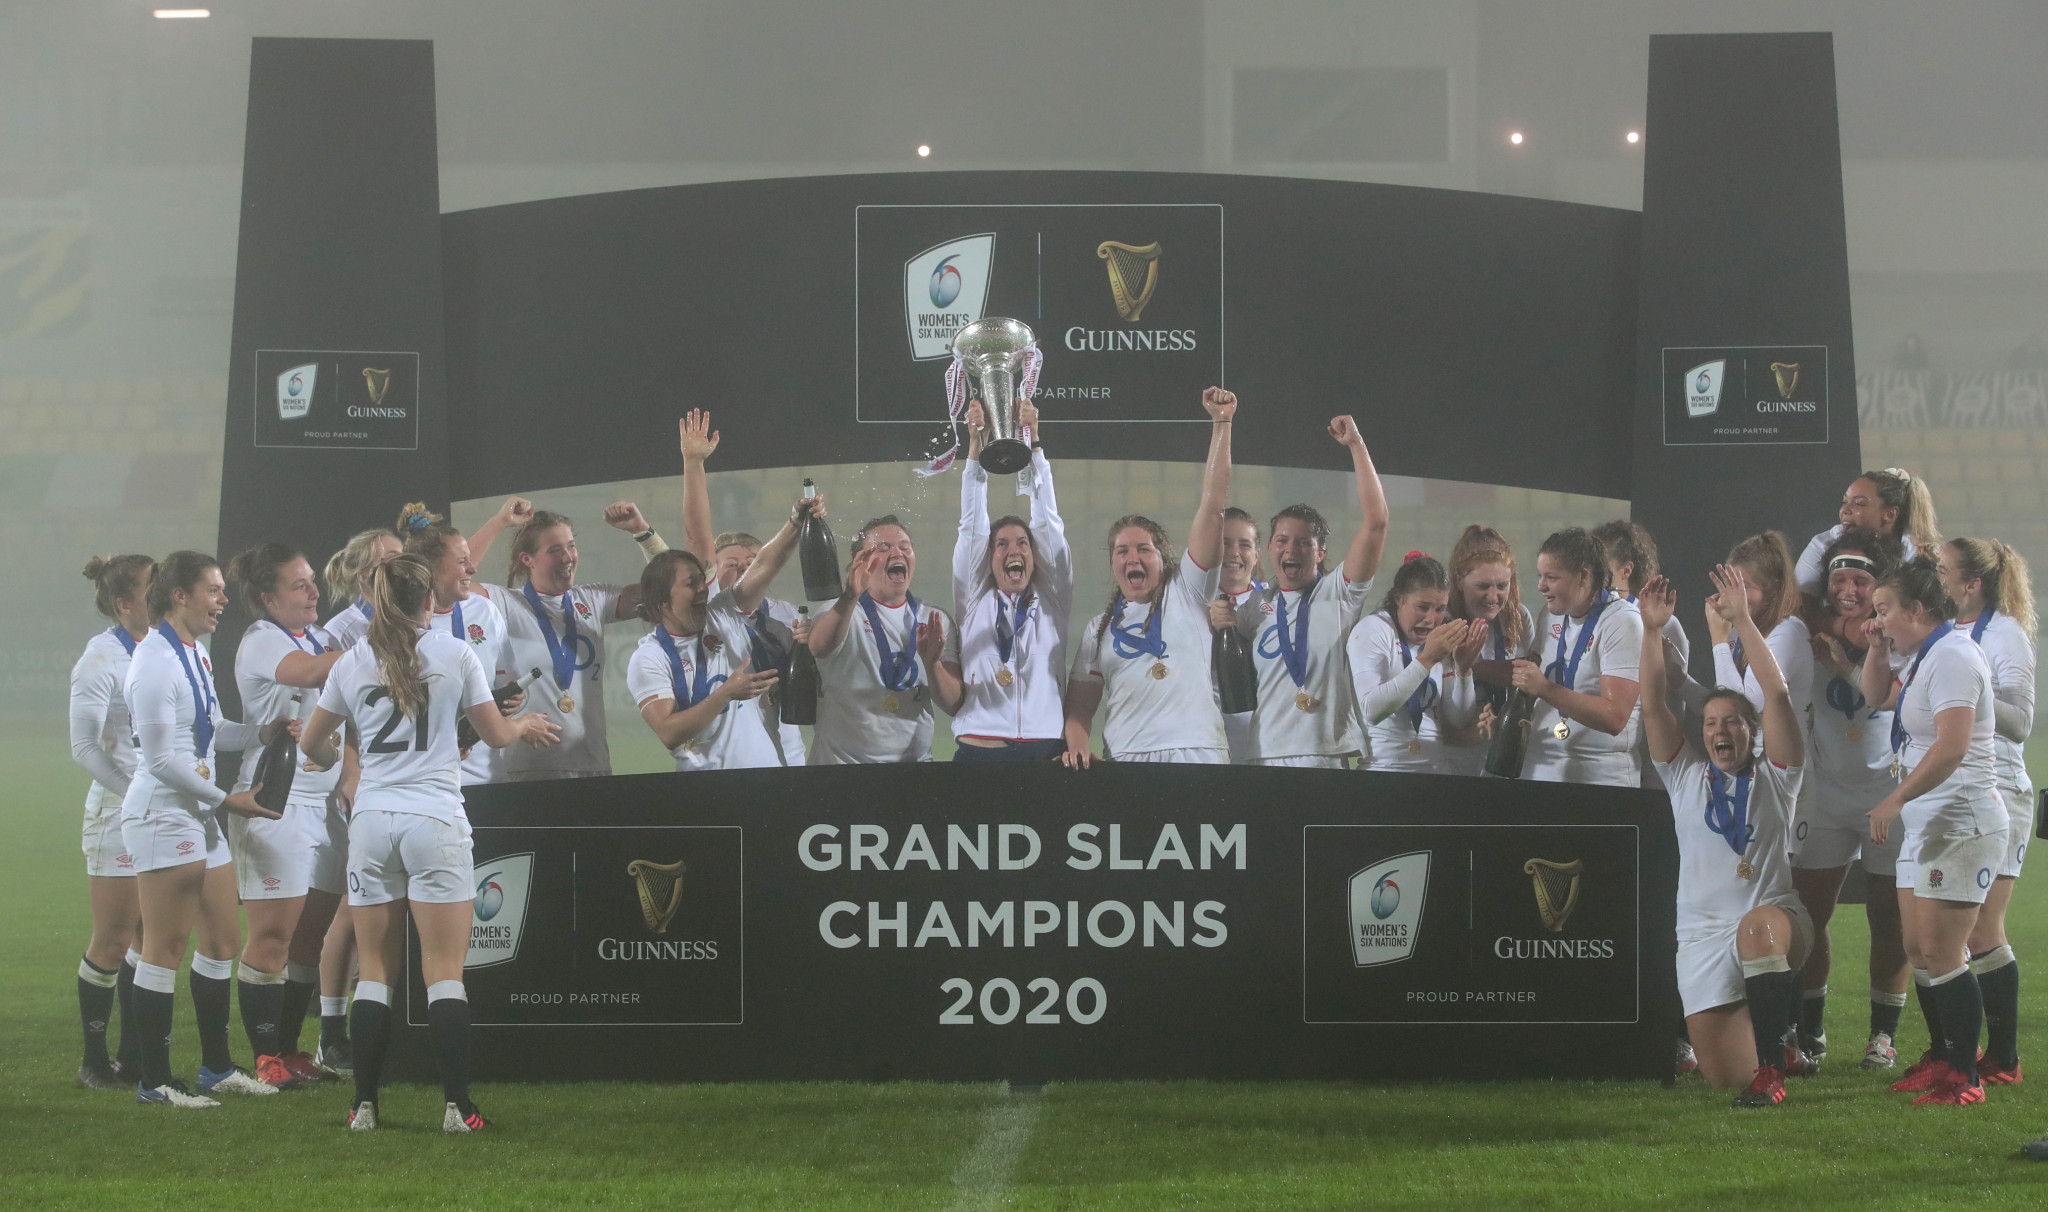 Women's Six Nations postponed due to COVID-19 pandemic